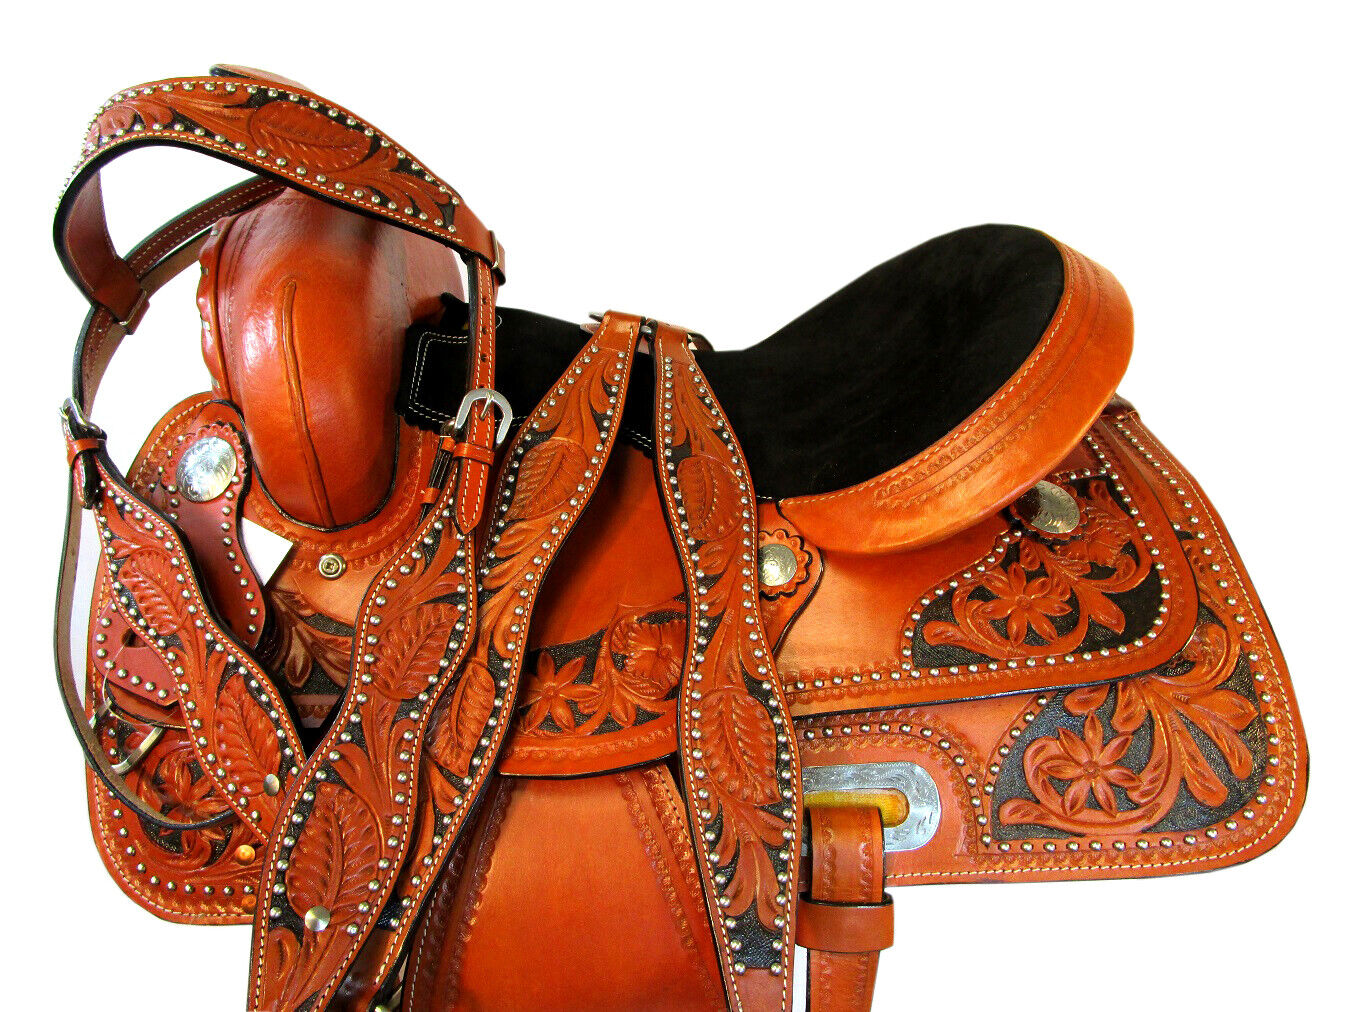 SQHB LEATHER STUDDED HANDCRAFTED CLASSIC 15  16  SADDLE SHOW RODEO FLORAL